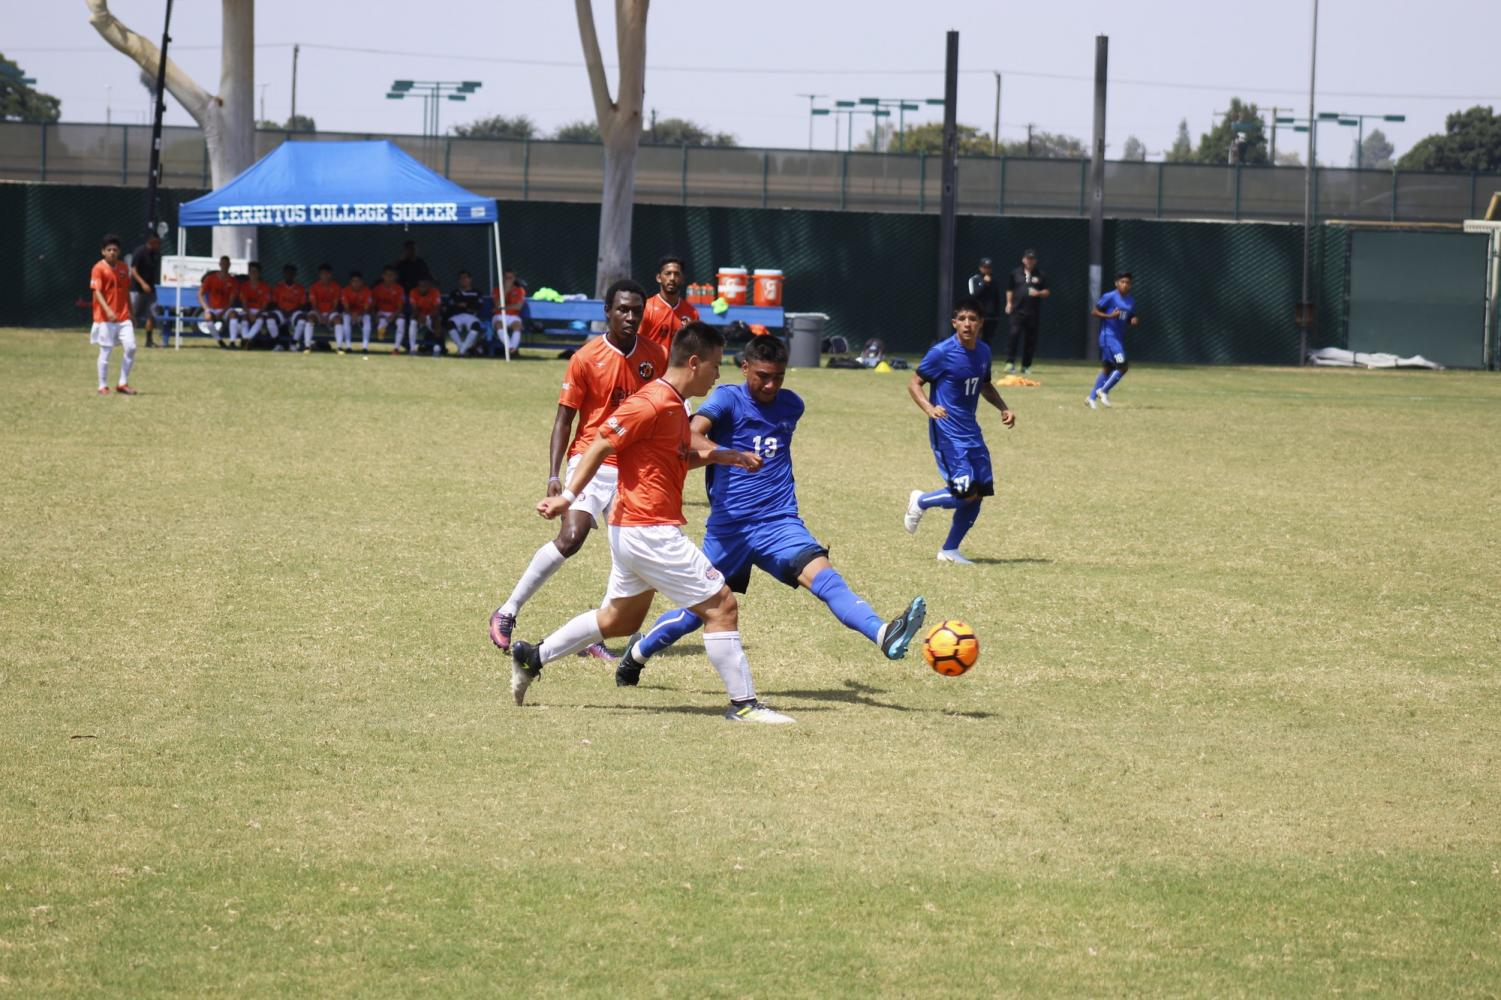 Sophomore forward No. 13, Christian Perez fighting for the ball during the first game of the day against the L.A. Wolves. Perez also played against the 2008 State Champion Alumni during the second half.